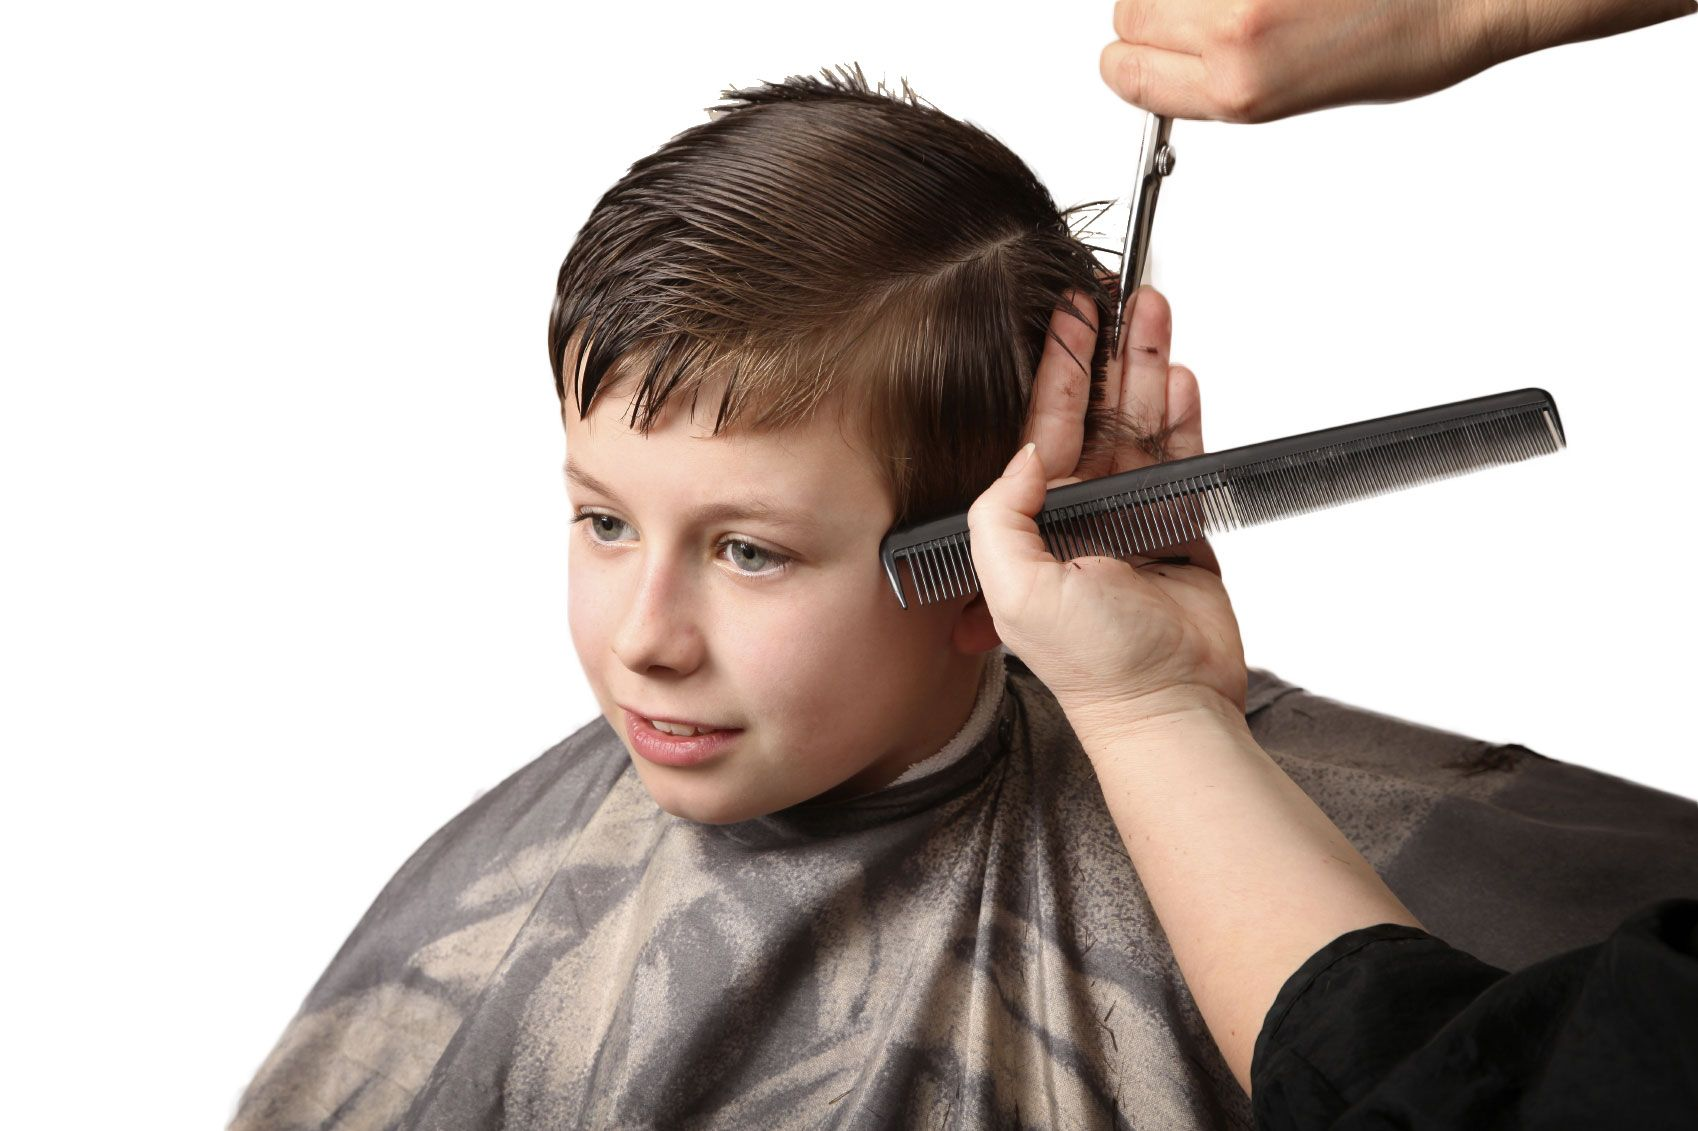 Boys will be men them looking great and learn good grooming